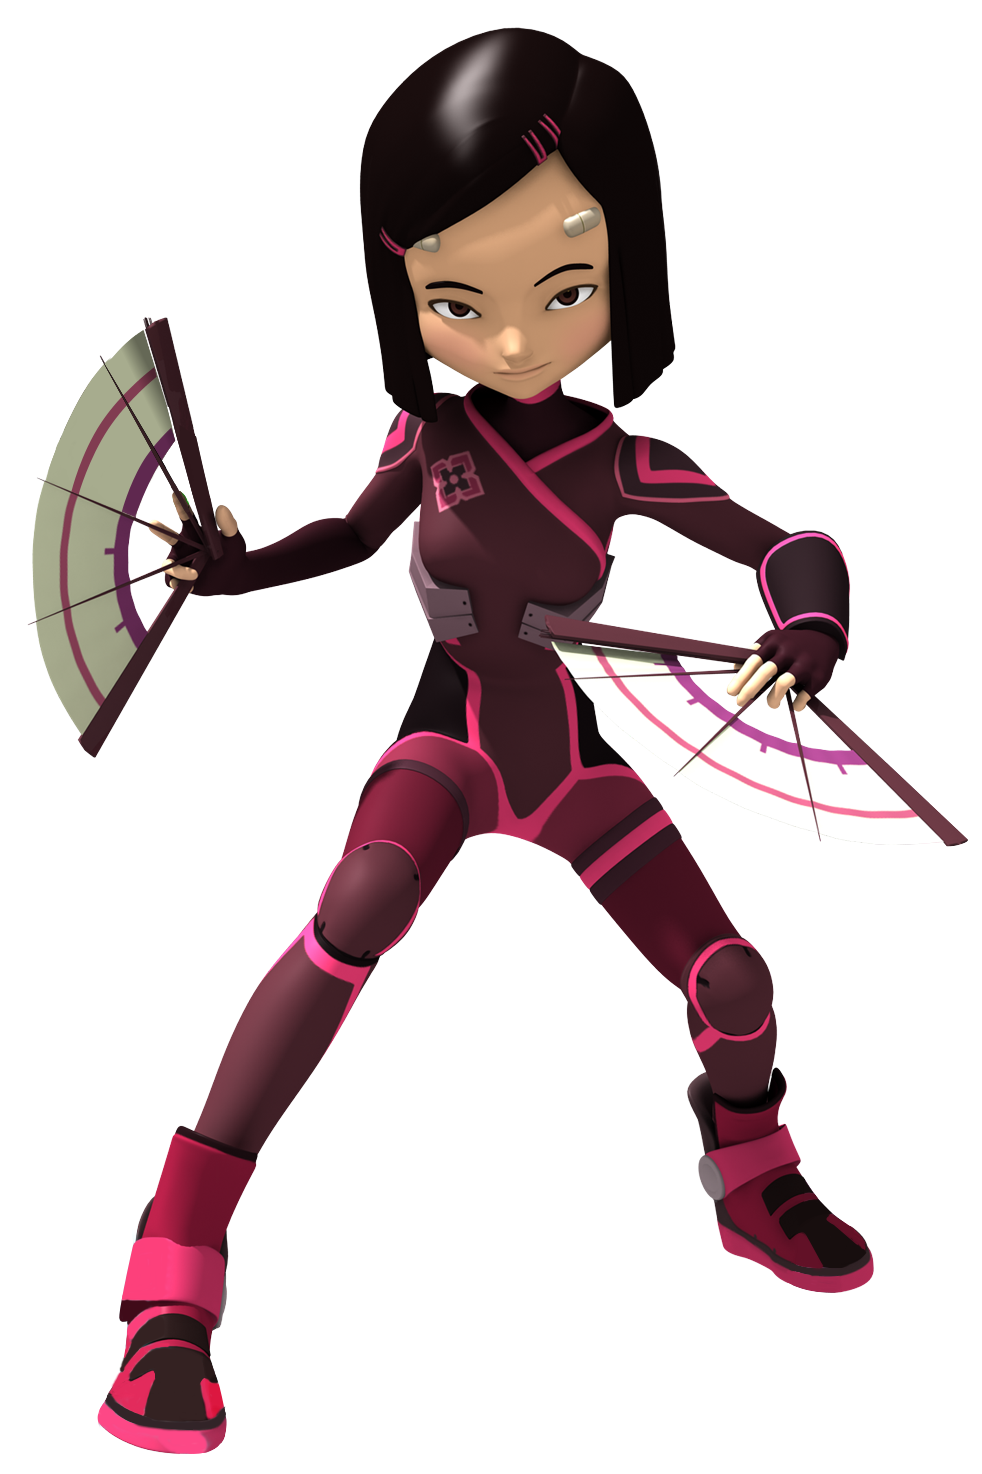 yumi ishiyama code lyoko wiki fandom powered by wikia